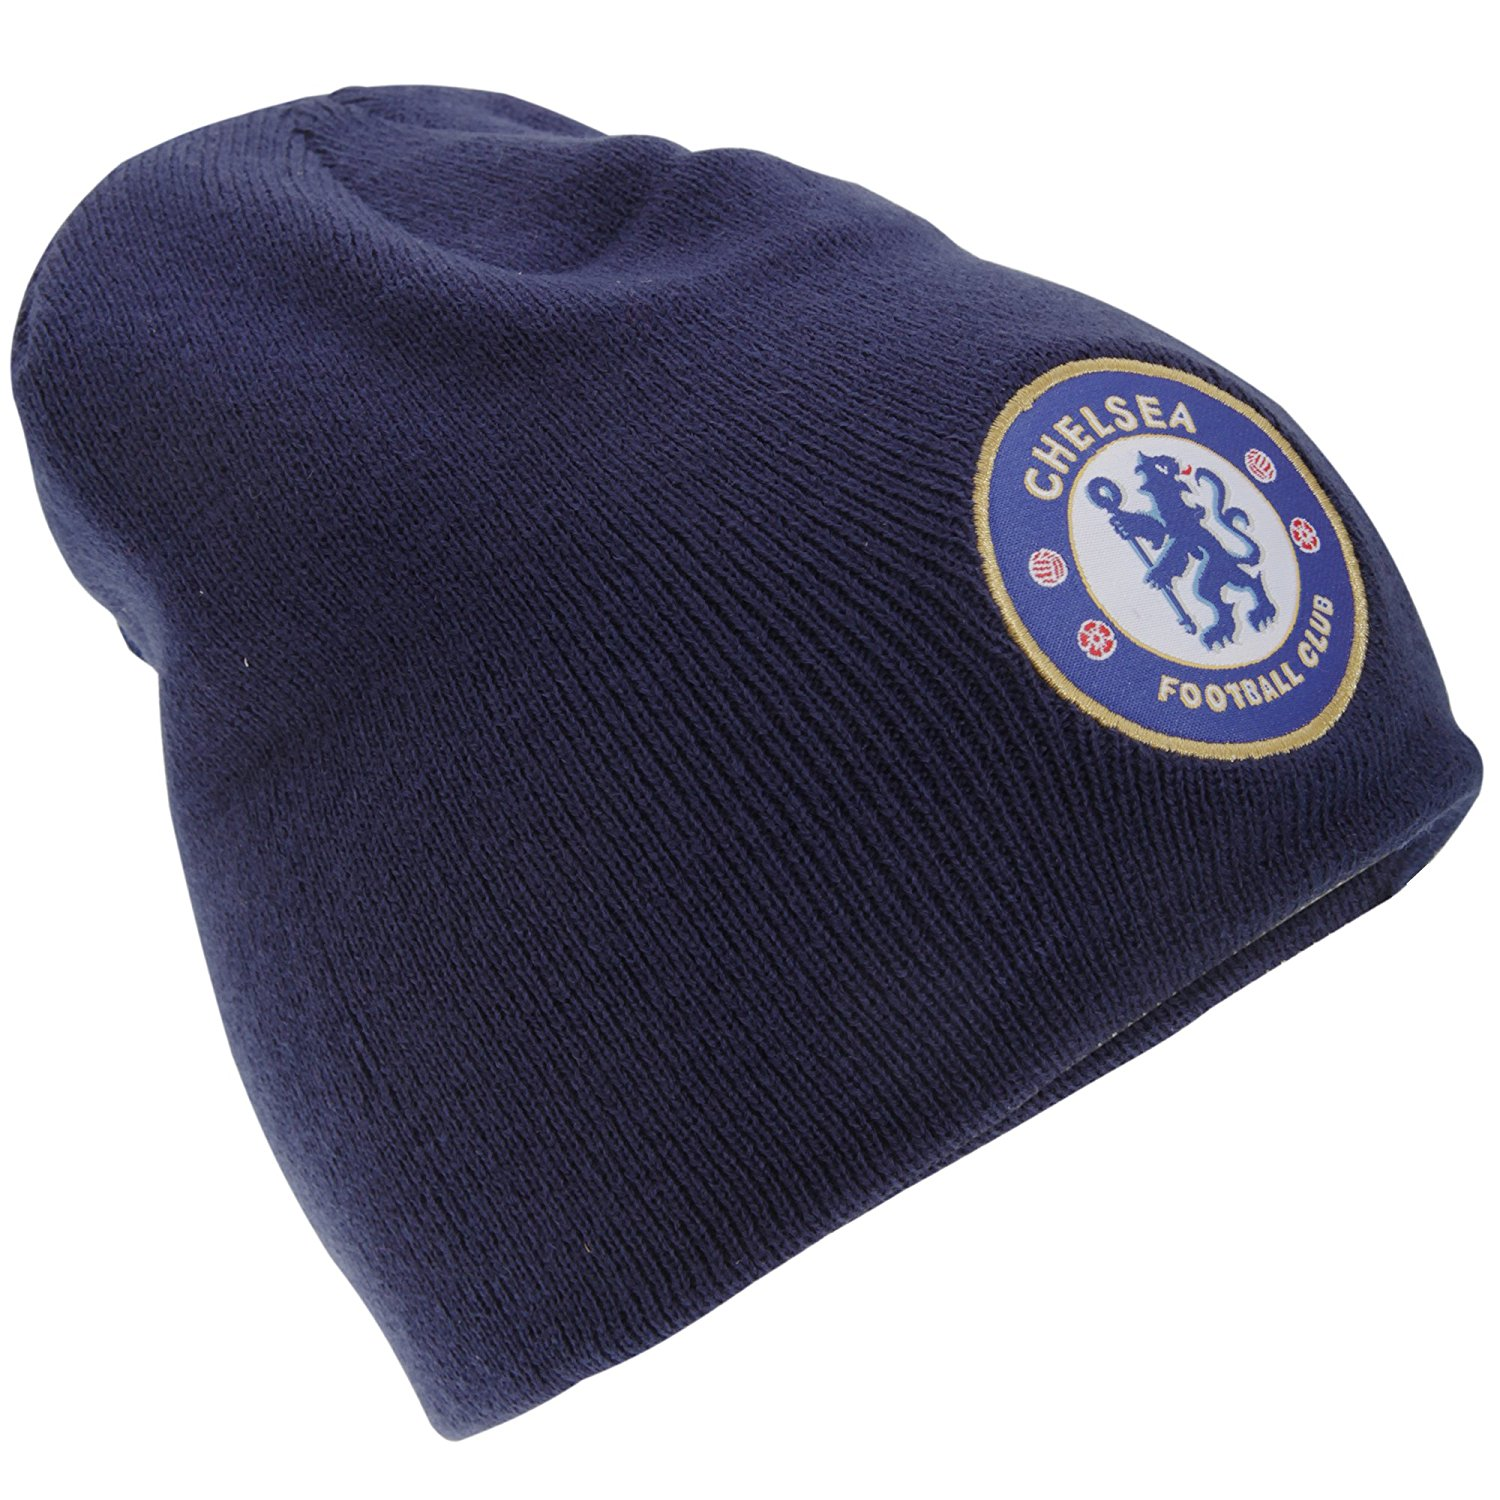 34419e11fbc Get Quotations · Chelsea FC Mens Official Knitted Winter Football Crest  Beanie Hat